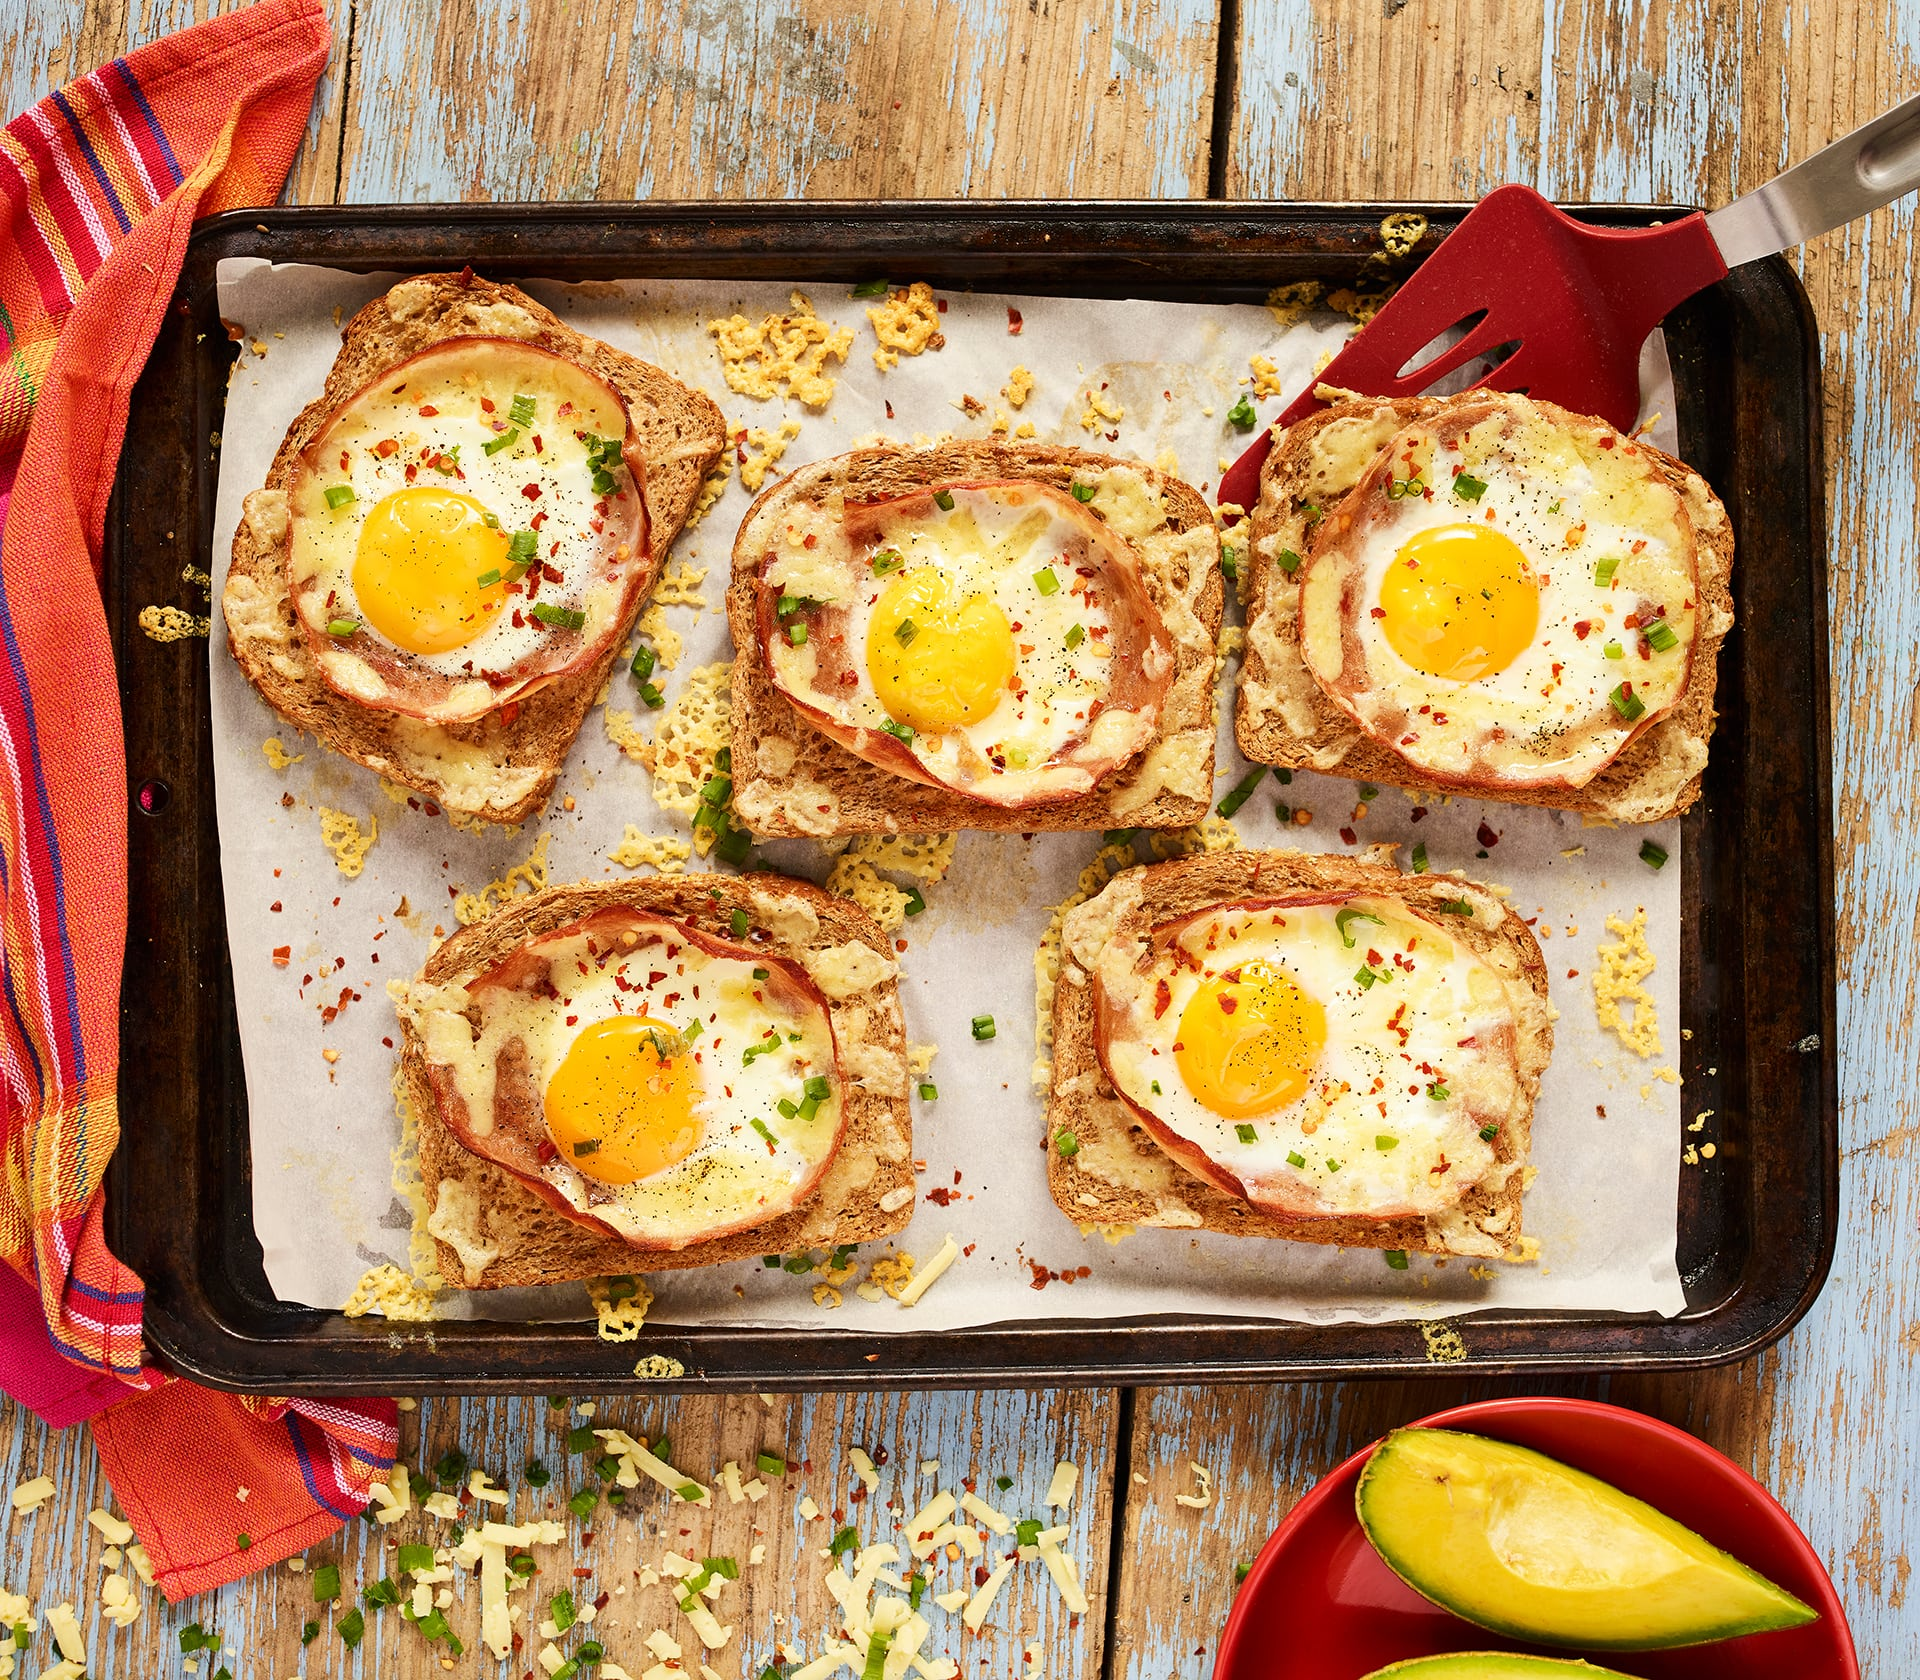 Cheesy Passion Deli and Egg in a Hole Bake